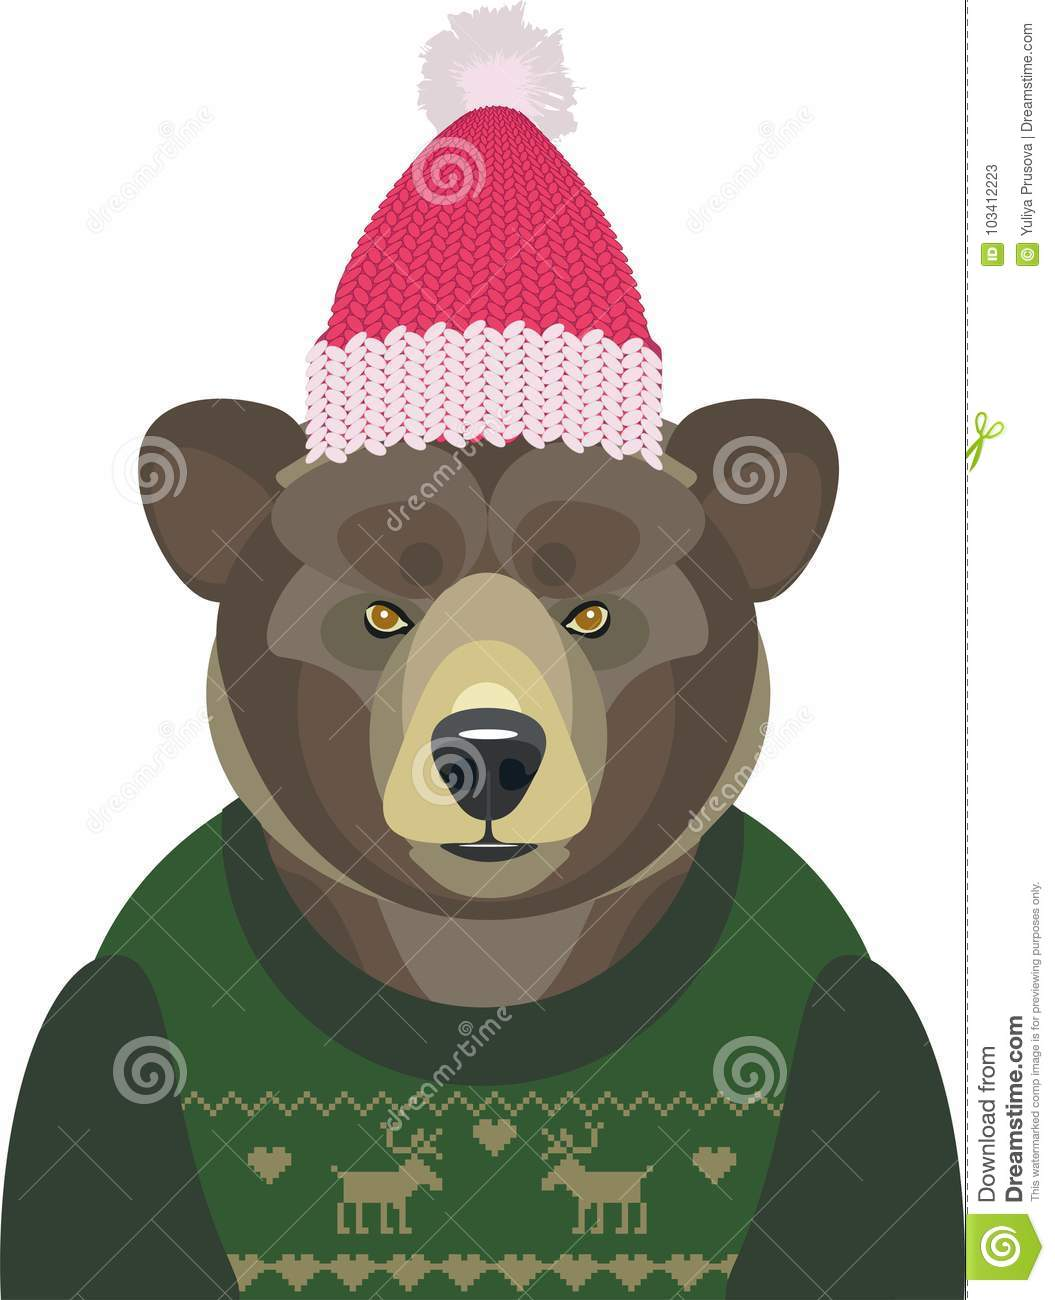 952b8af97 Vector illustration of Christmas bear in sweater and hat on white  background.